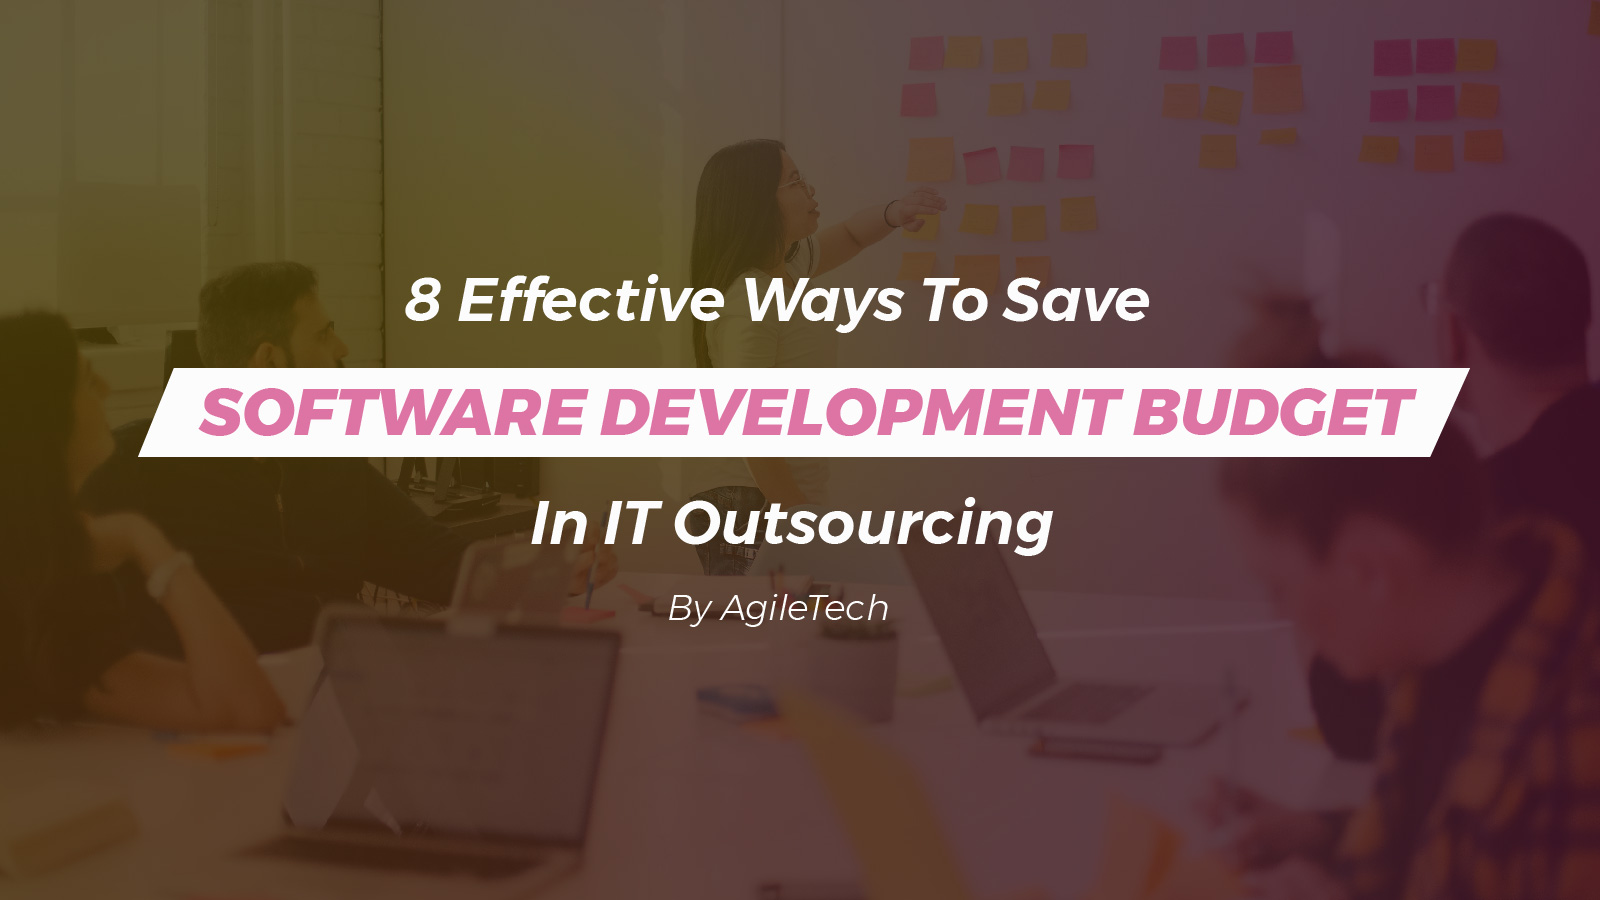 how to save software development budget in it outsourcing by agiletech